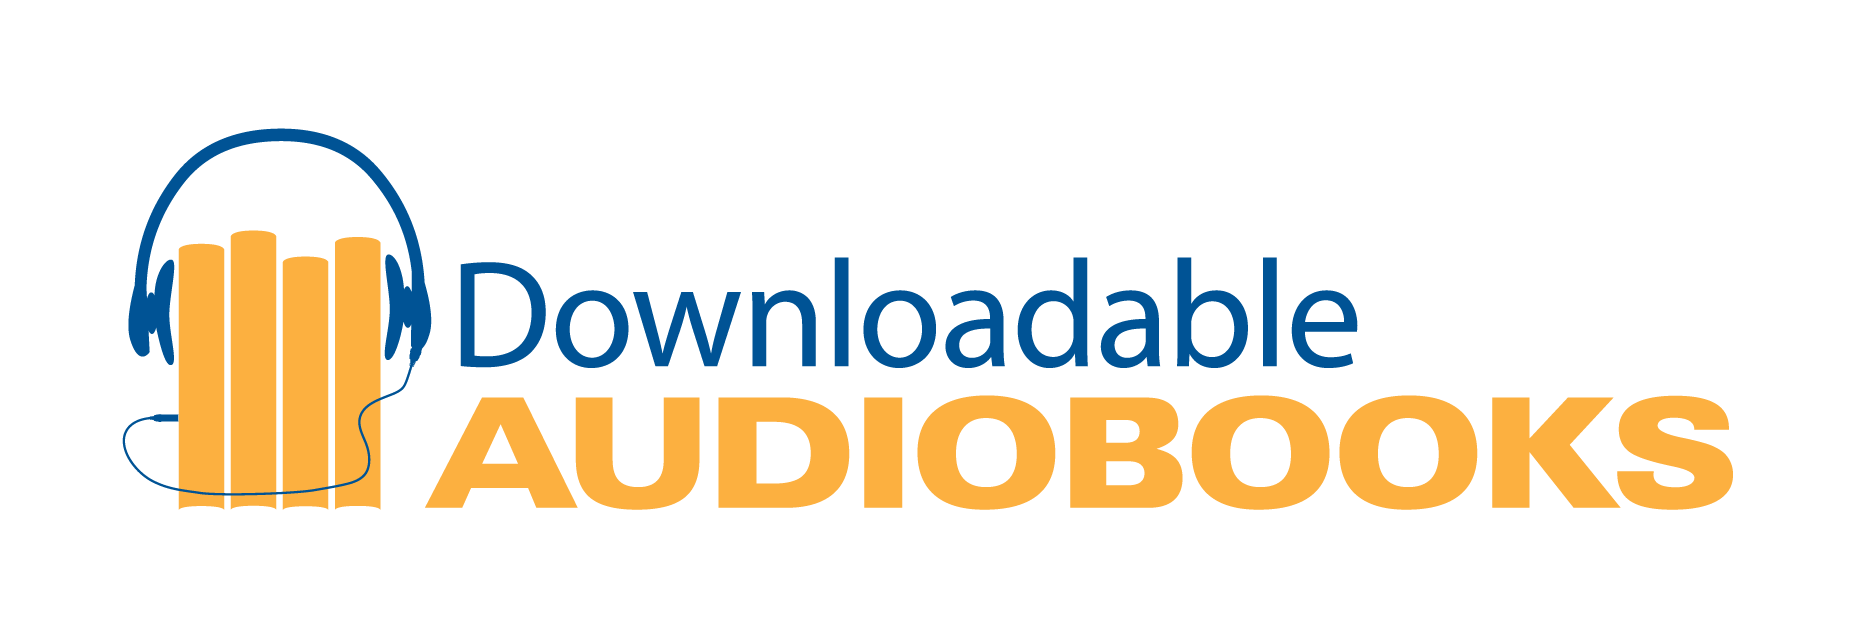 Success audio books free download audiobook: the 7 habits of highly….